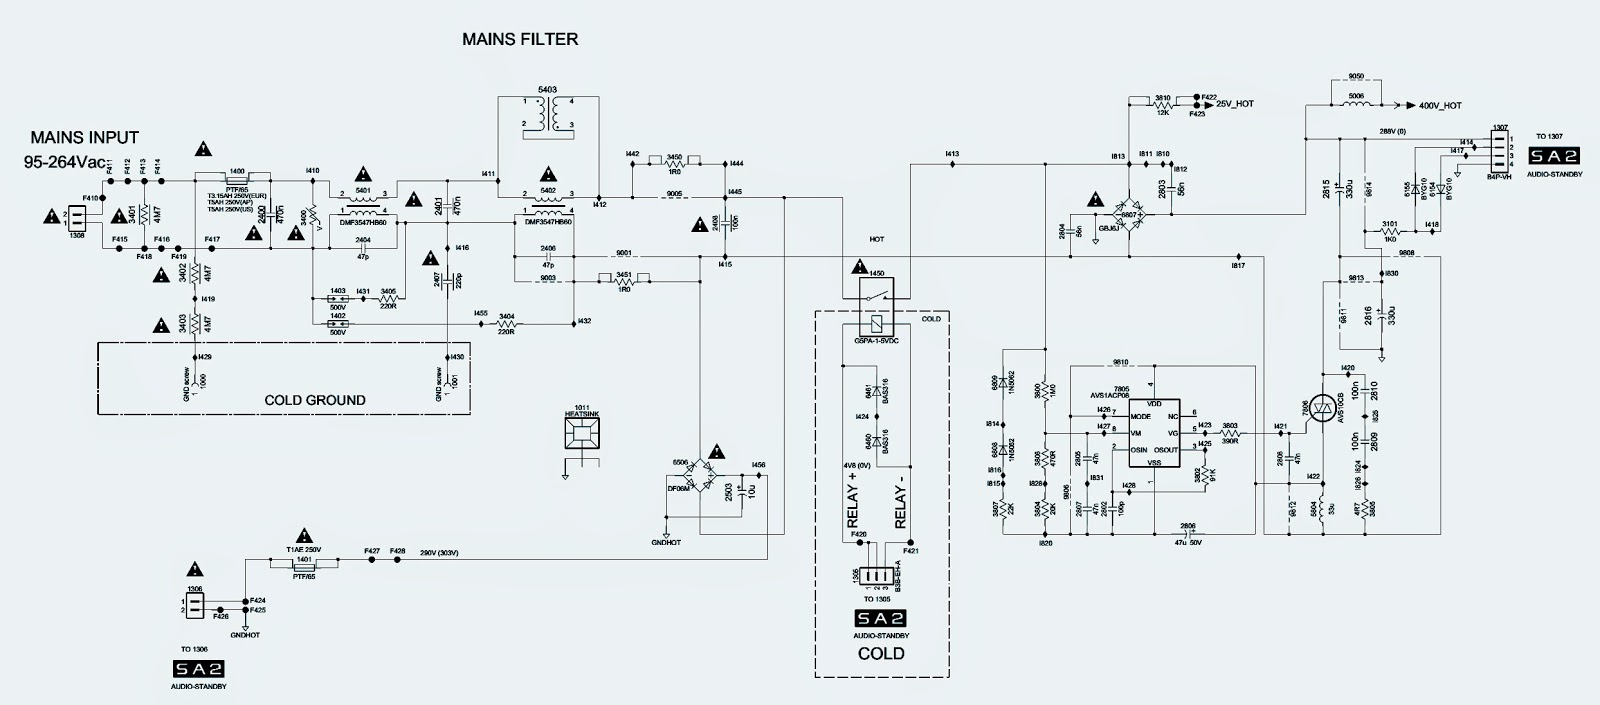 32 inch philips lcd tv power supply [smps] schematic electro help32 inch philips lcd tv power supply [smps] schematic